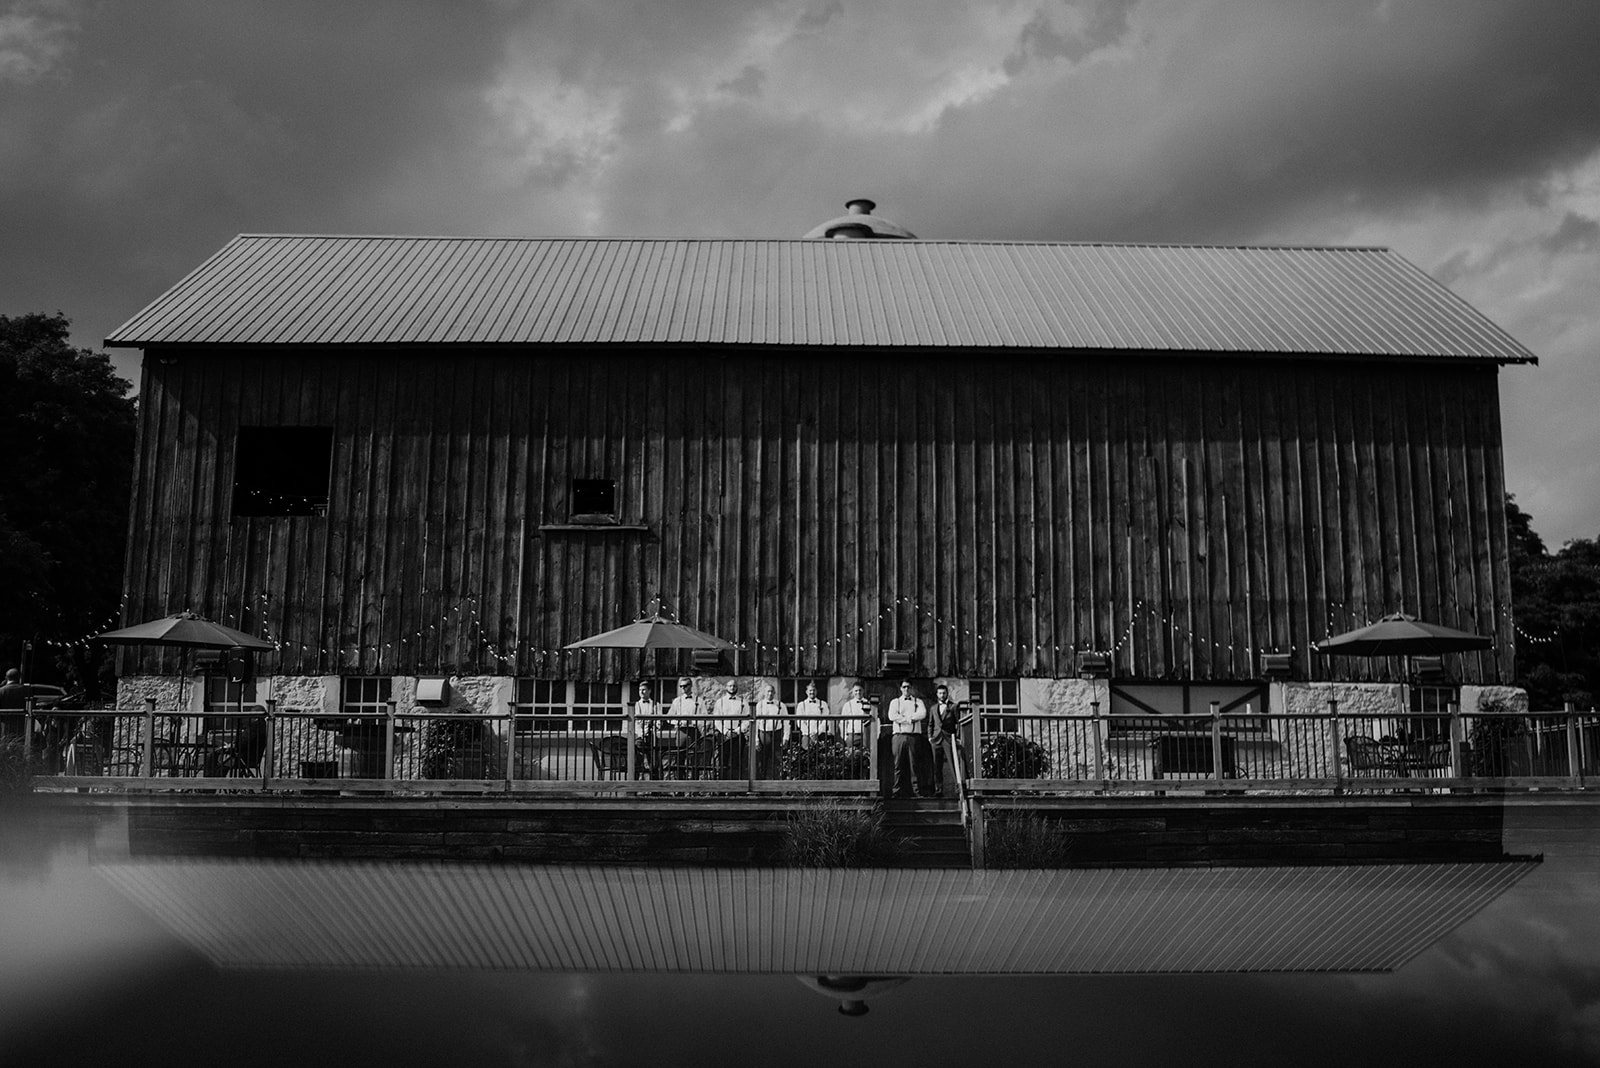 overthevineswisconsinwedding_0534.jpg